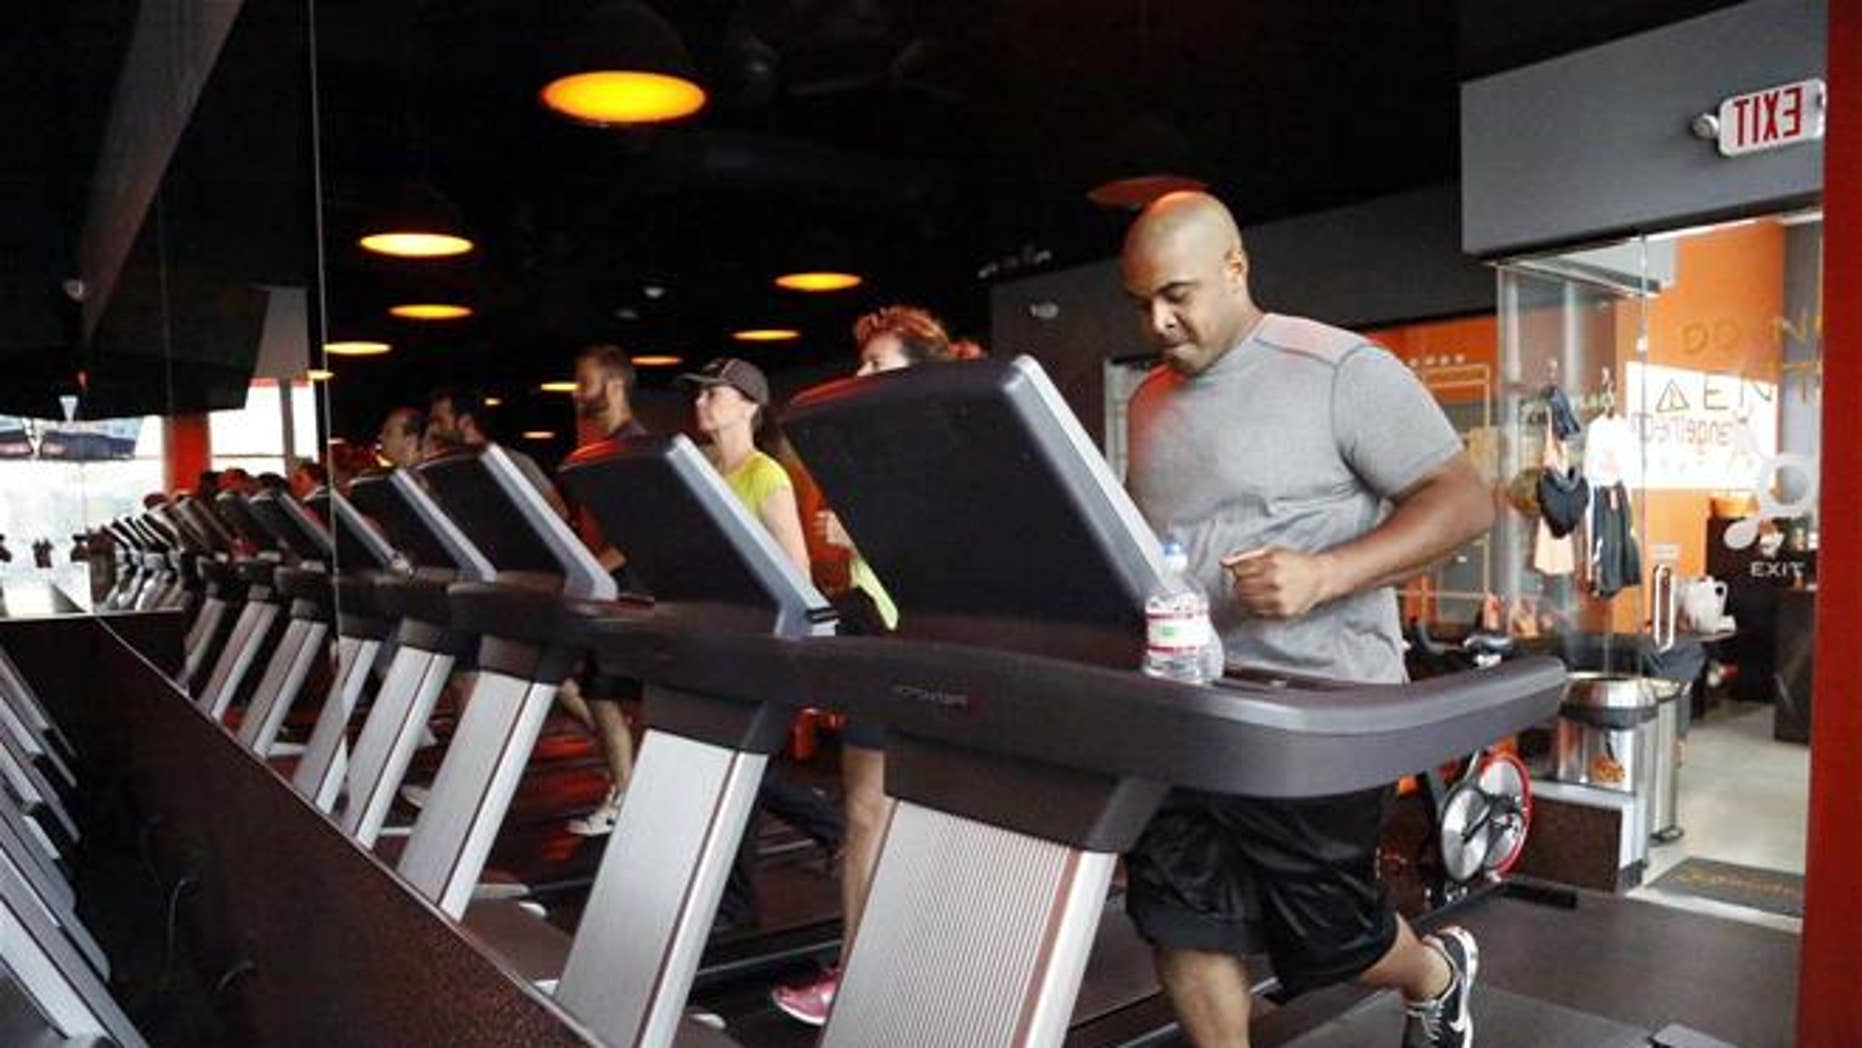 Exercise after mental exertion could keep you from overeating.